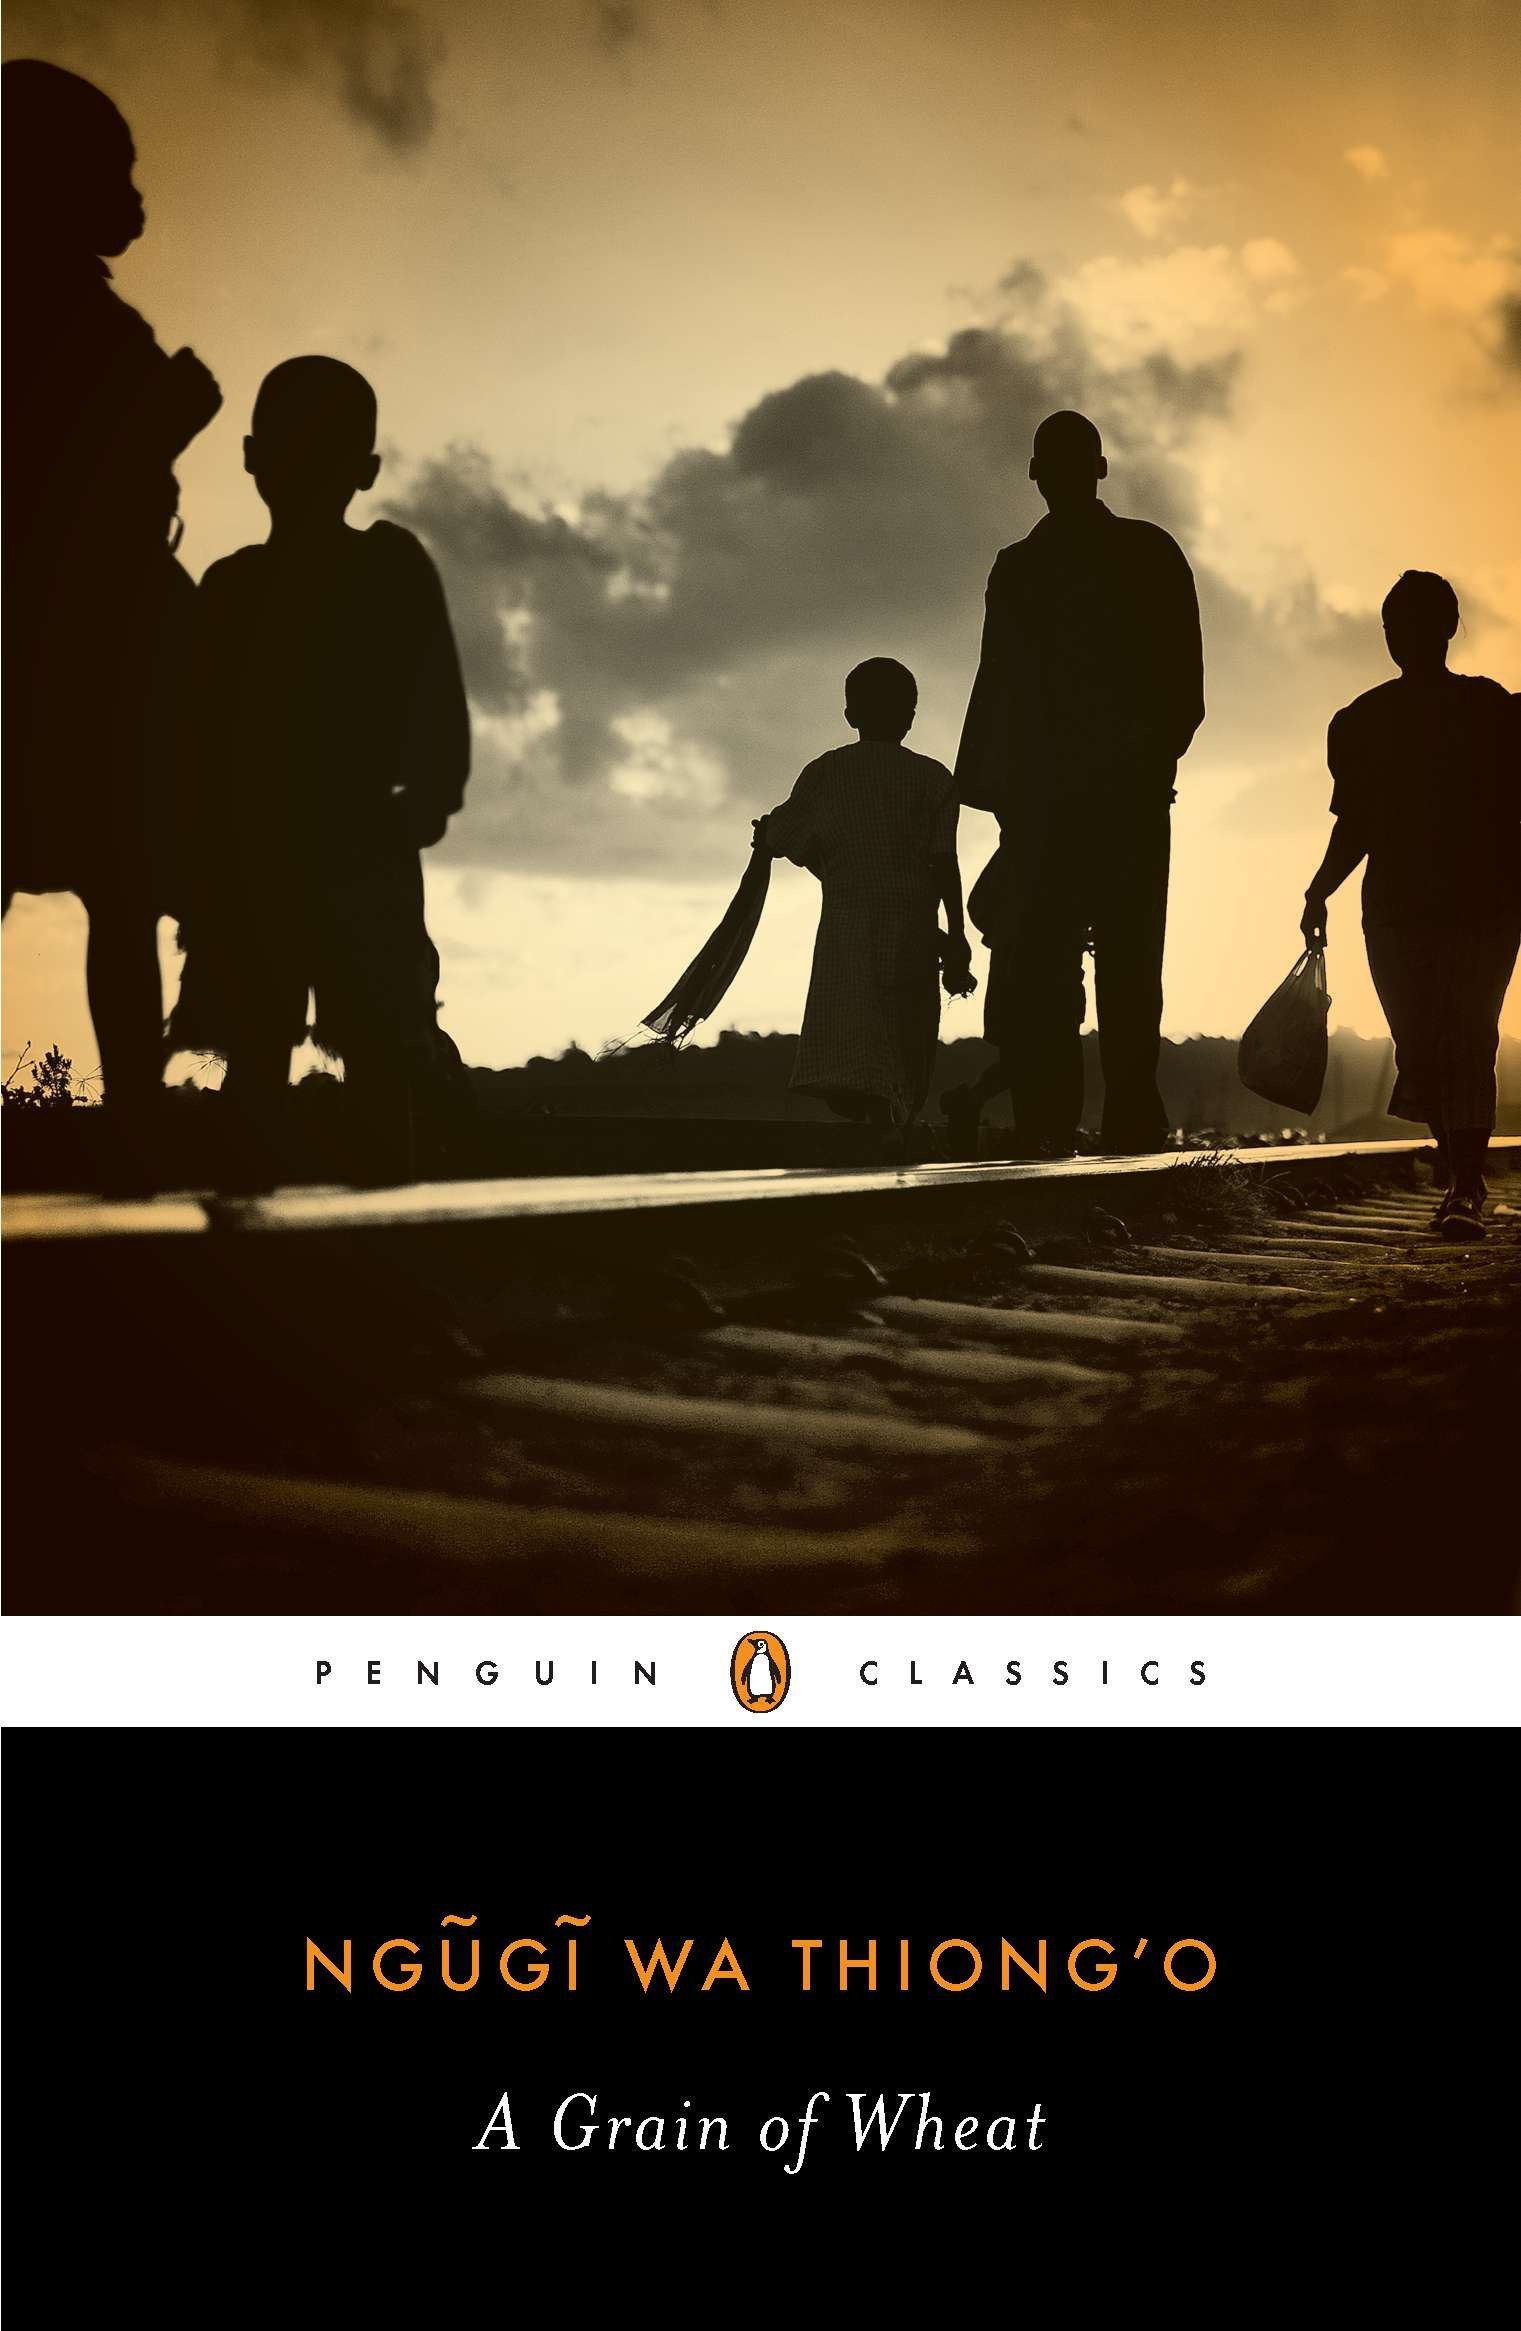 A Grain of Wheat (Penguin African Writers Series) Paperback – June 5, 2012 Ngugi wa Thiong' o Chinua Achebe Abdulrazak Gurnah Penguin Classics